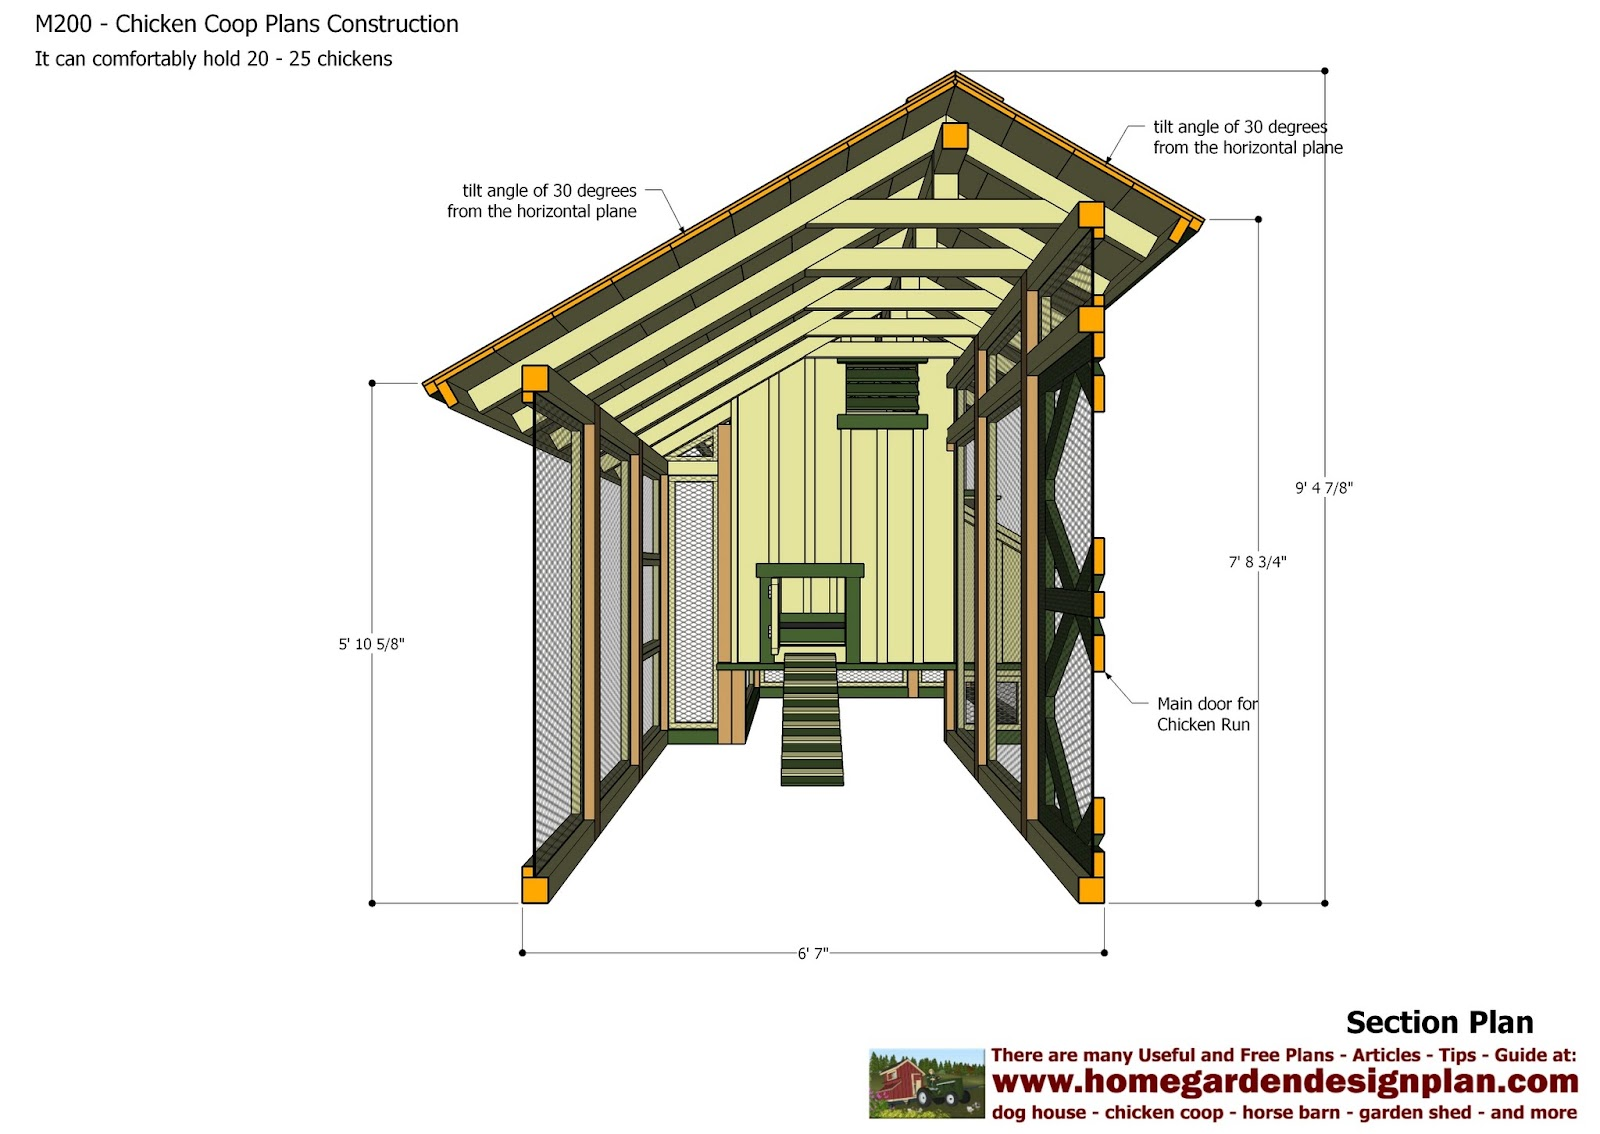 Home garden plans m200 chicken coop plans construction for Free coop plans